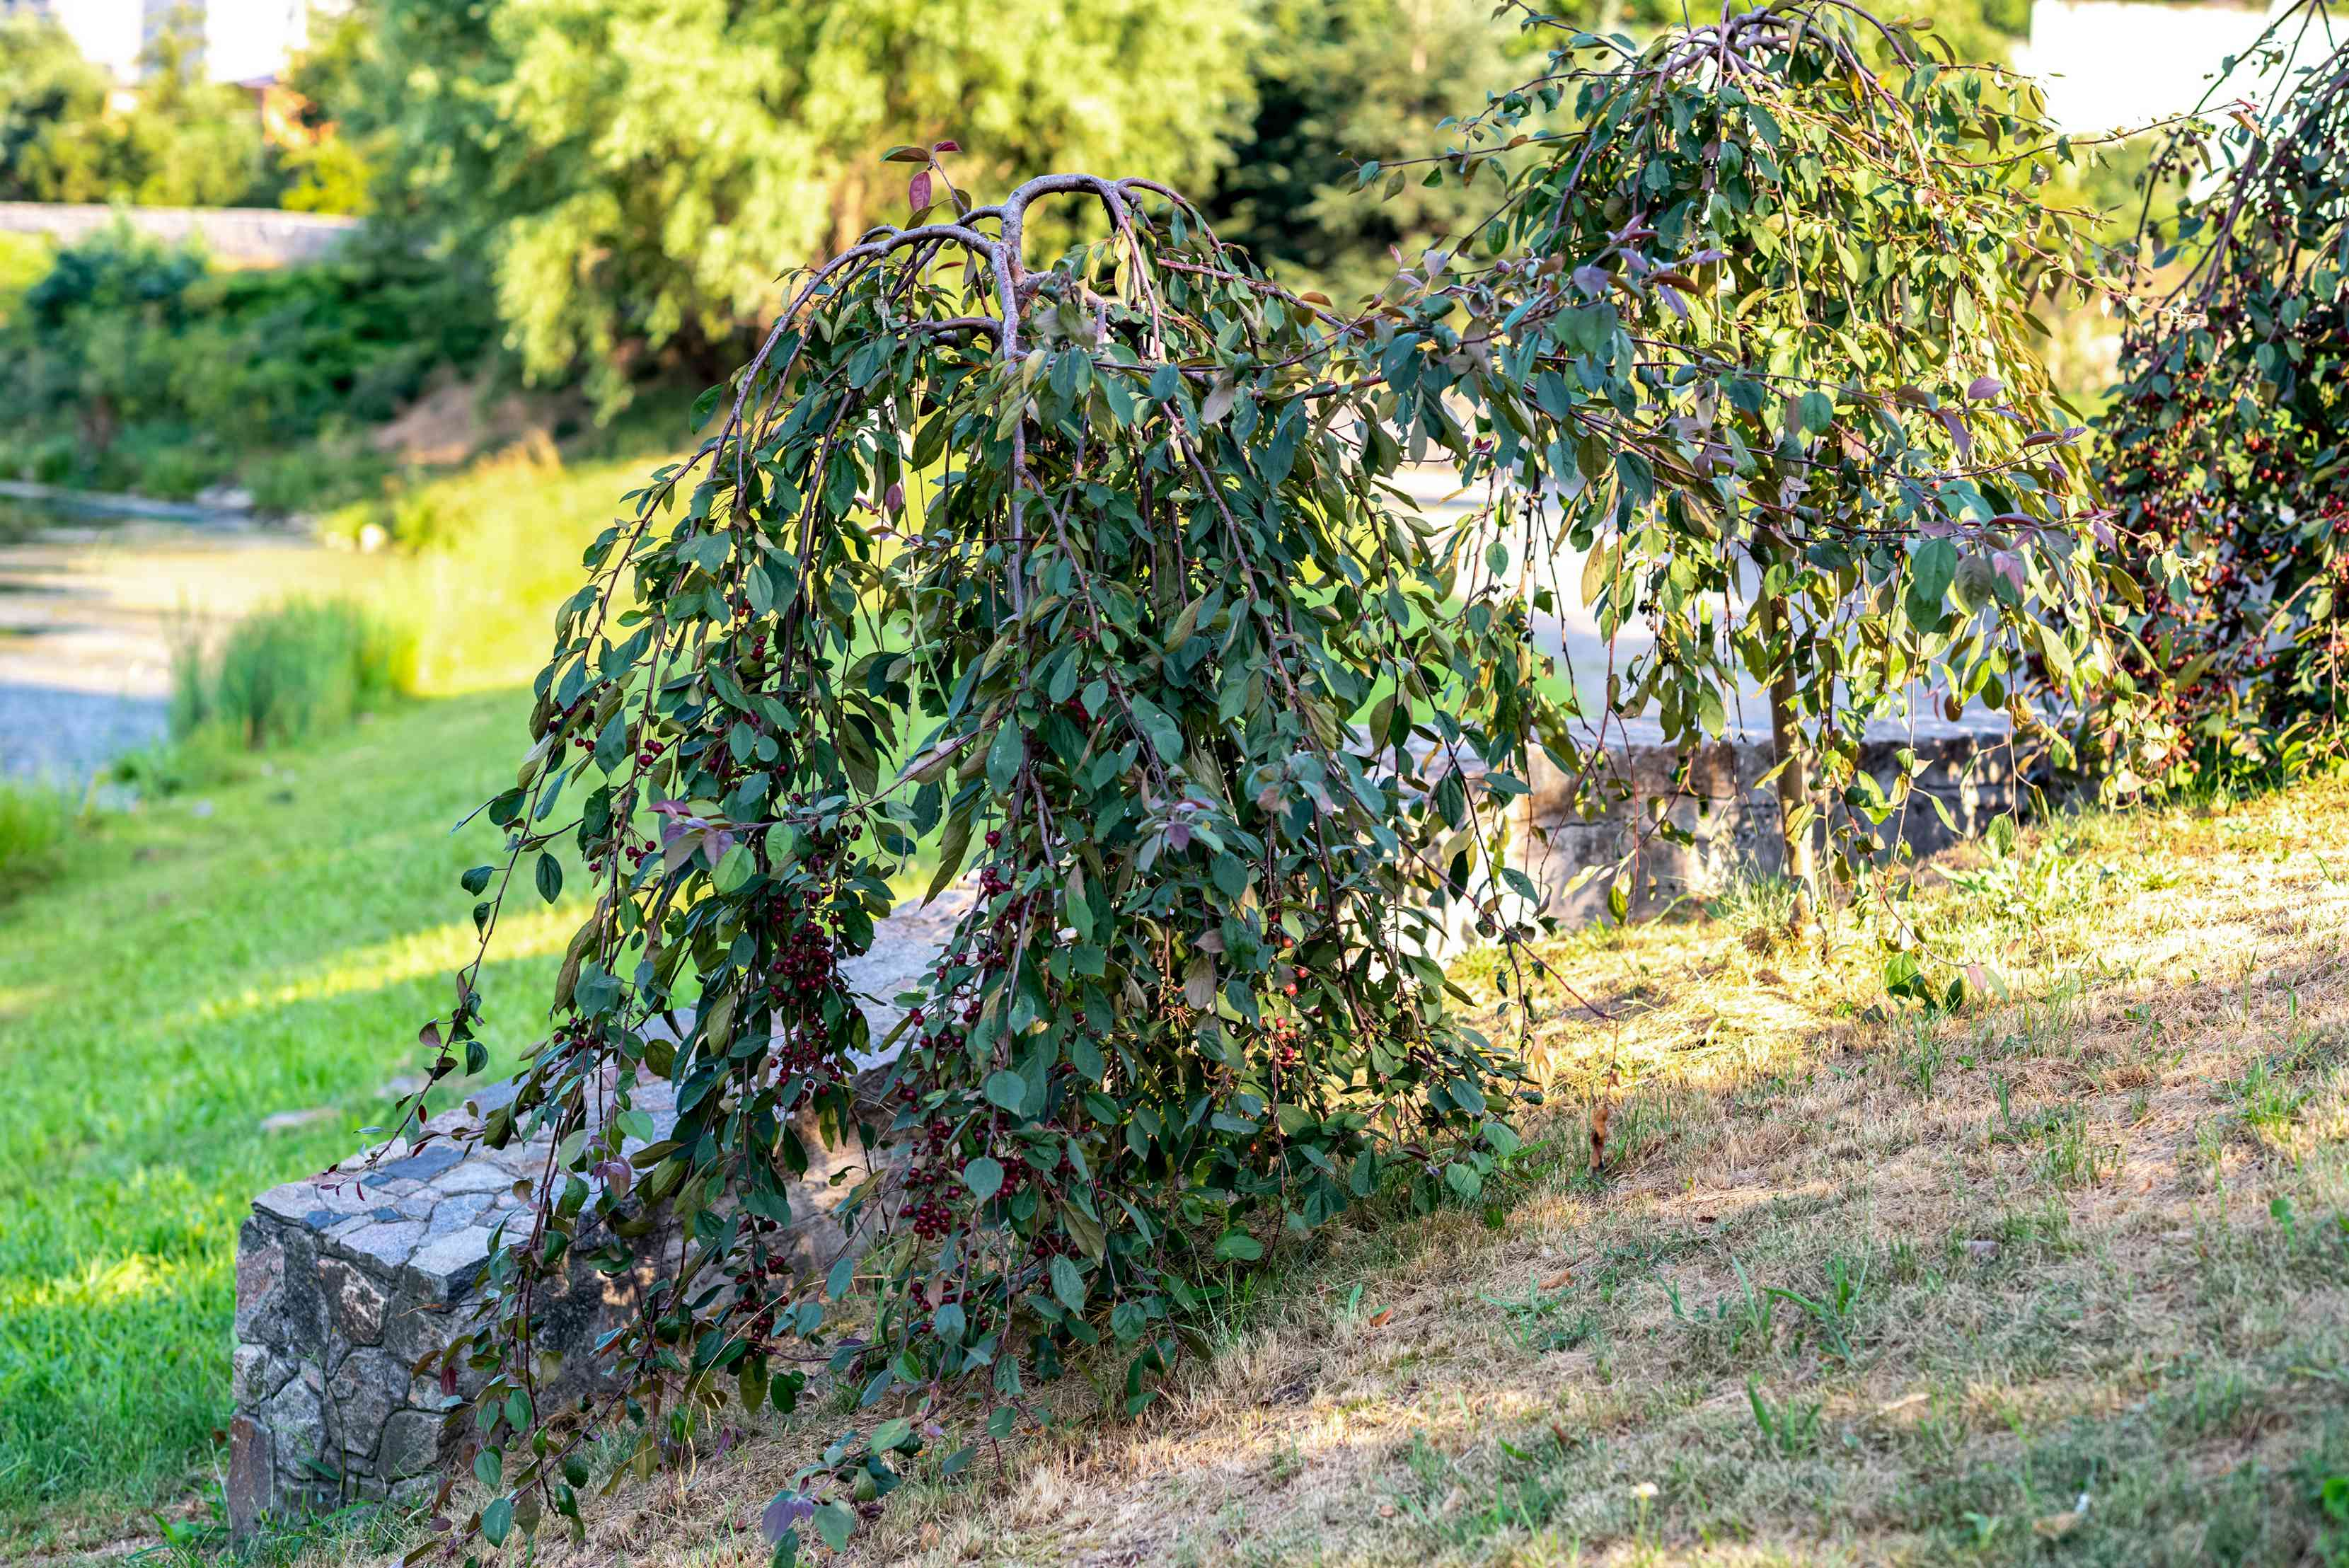 Red chokeberry shrub with drooping branches of oblong leaves near stone wall